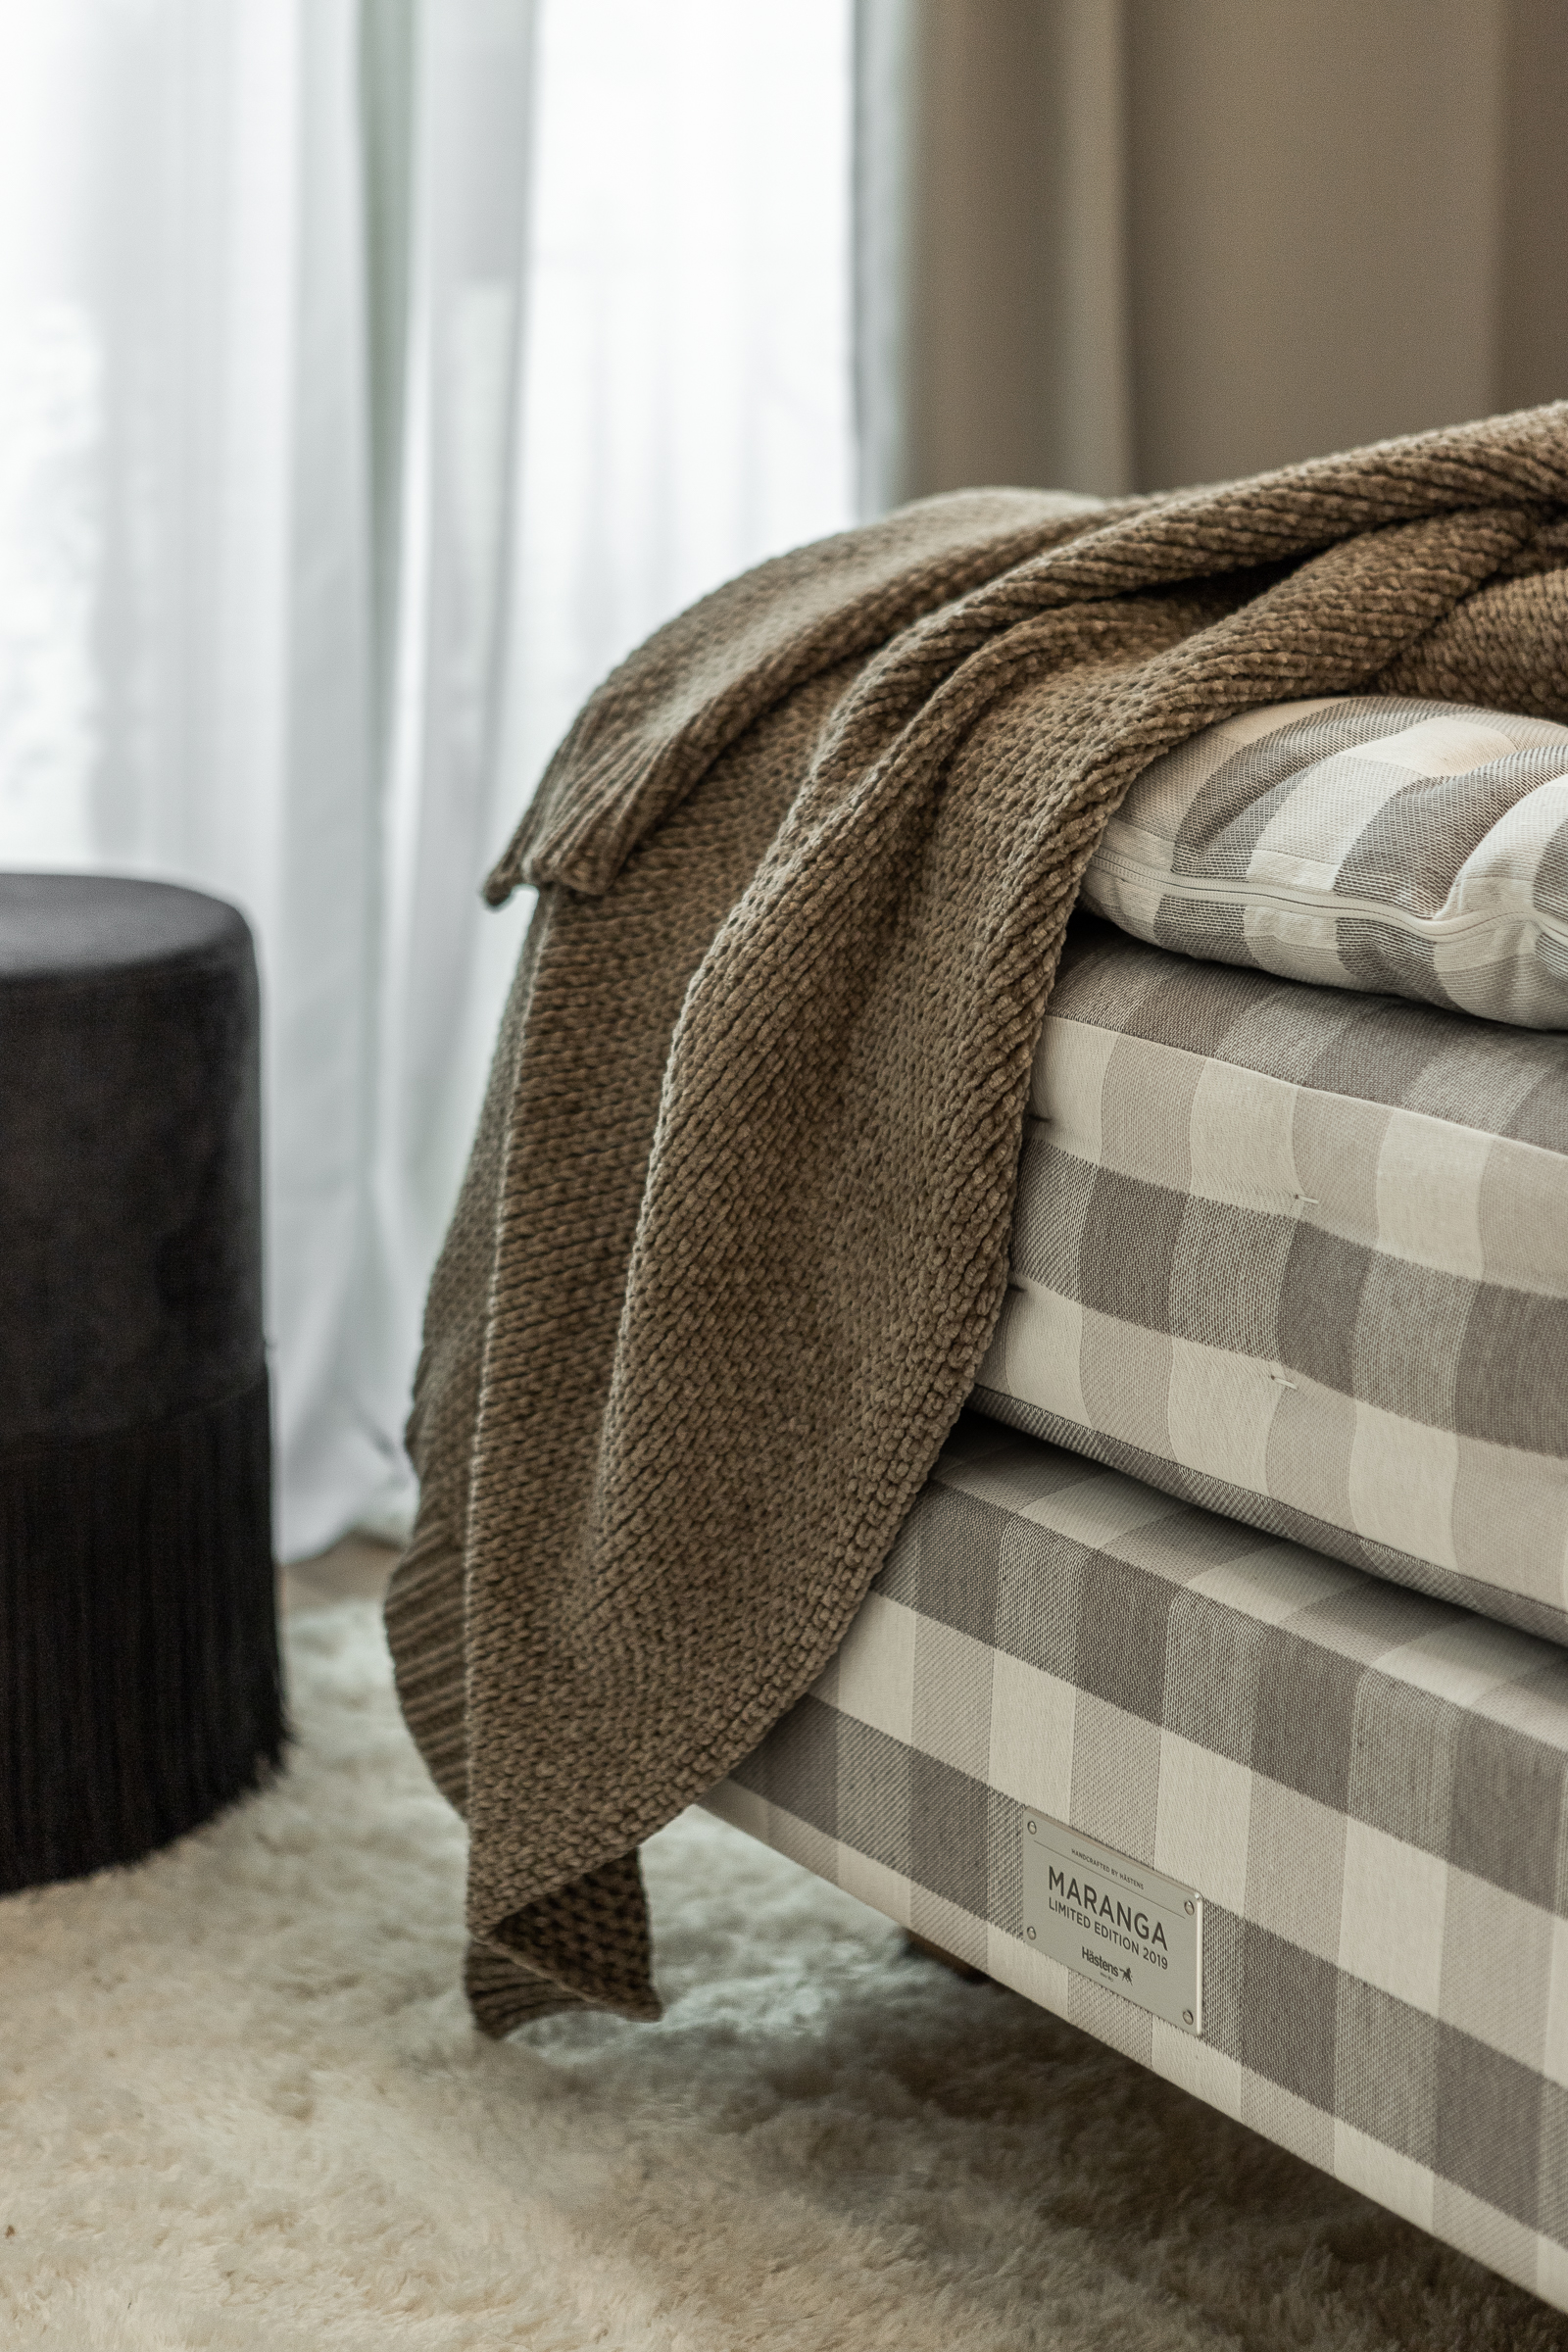 Nordic Standard furniture Hastens beds